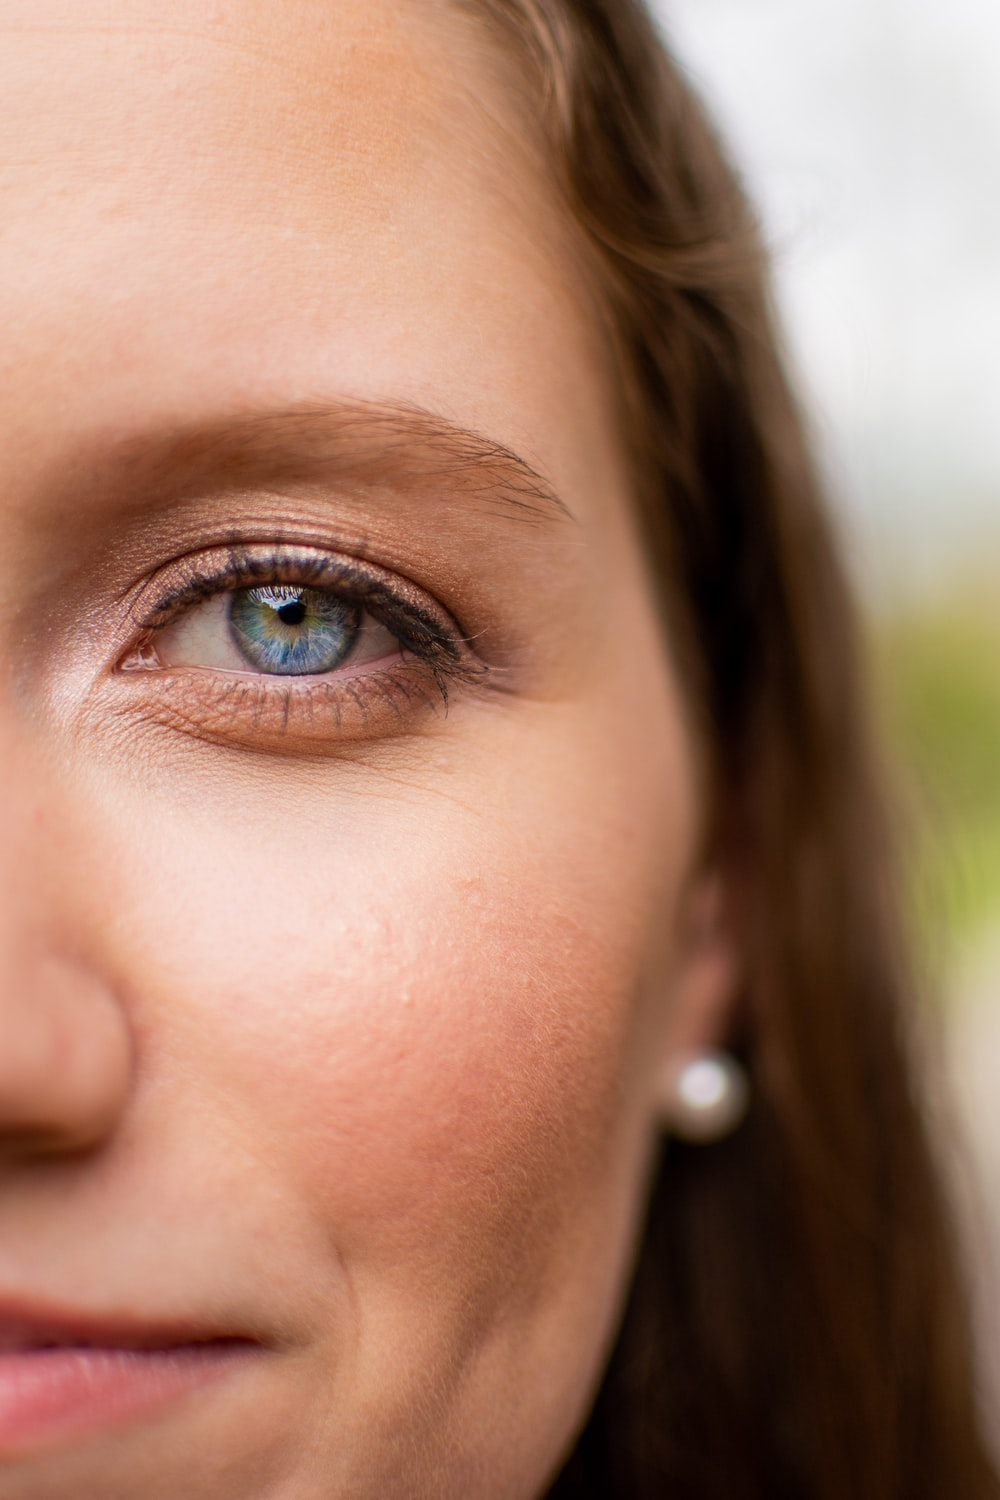 Woman With Blue Eyes And Silver Nose Piercing Photo Free Human